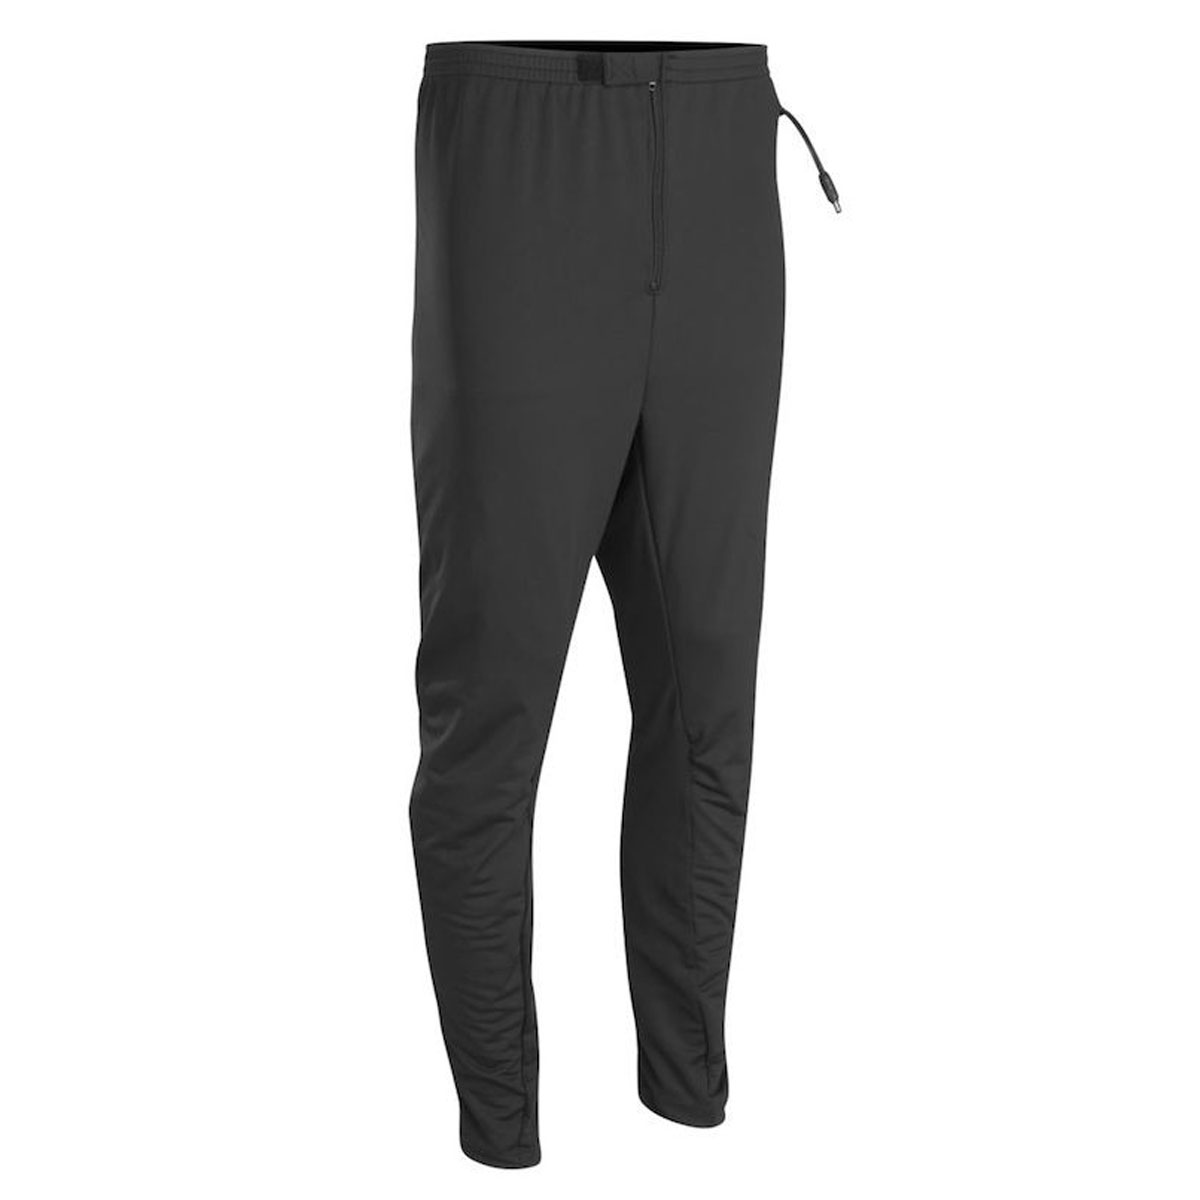 Firstgear Men's Heated Pants Liner